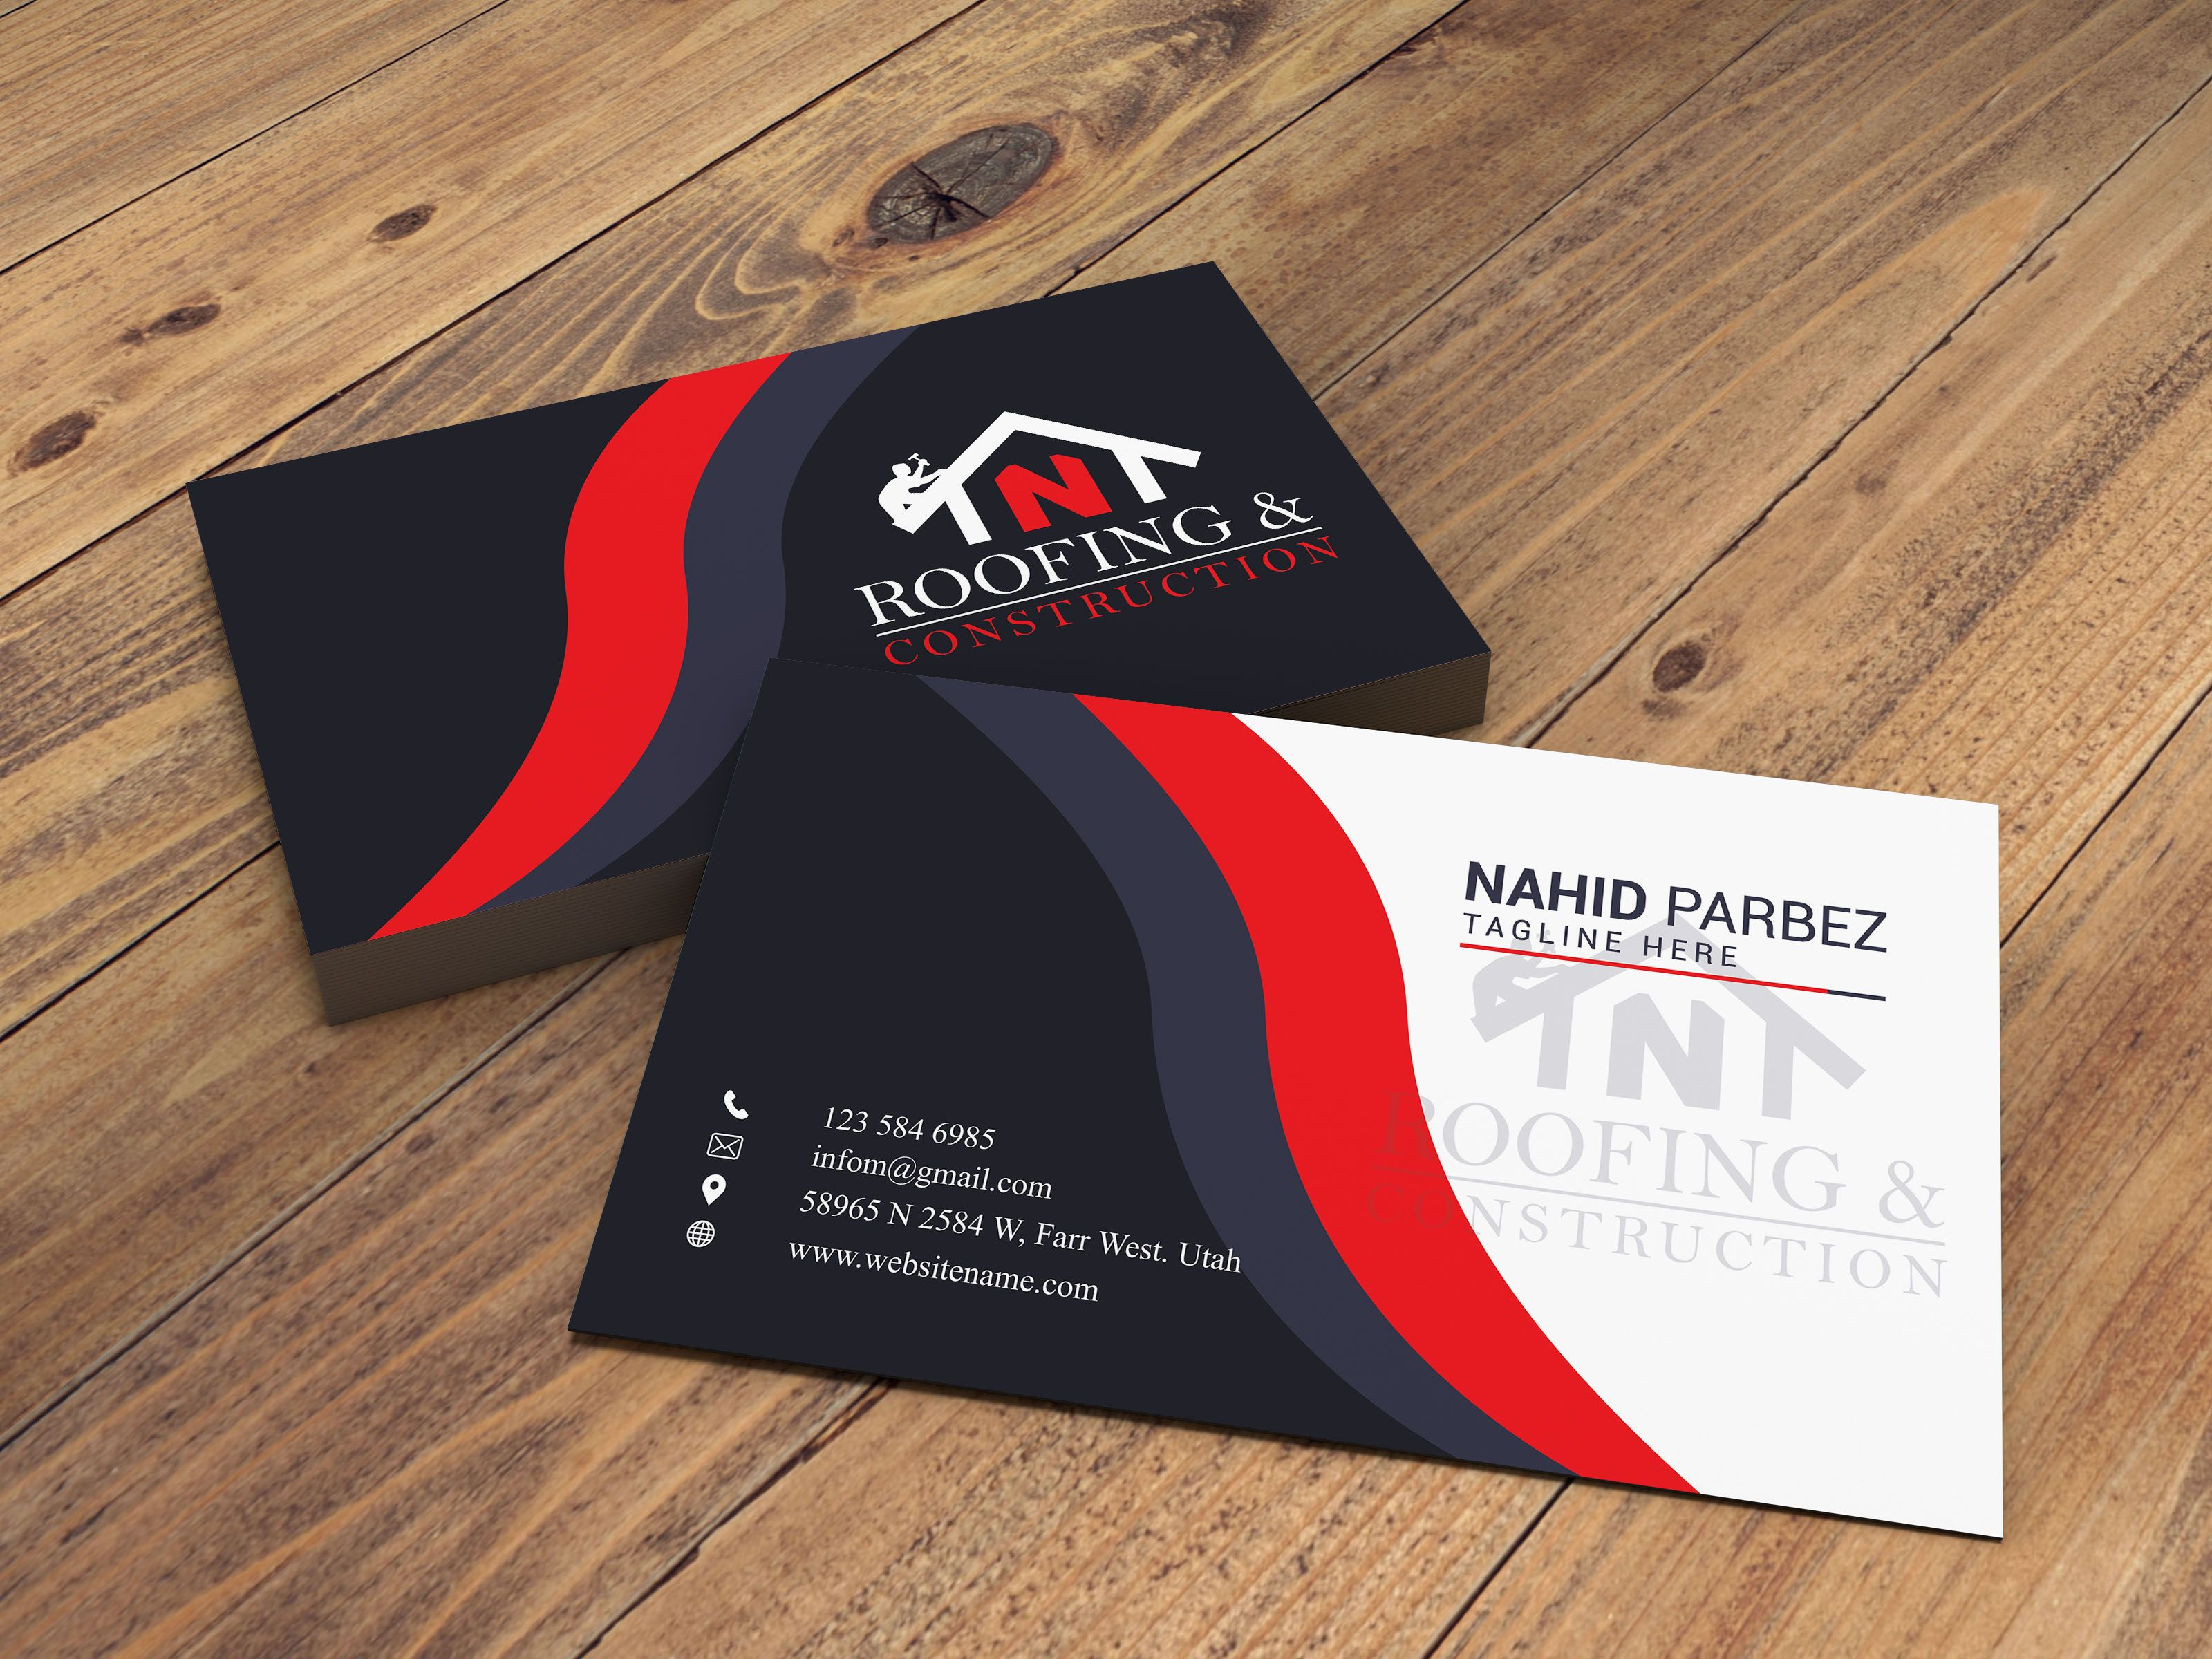 Photoshopexper2 I Will Do Make A Beautiful Business Card Design For 15 On Fiverr Com Business Card Design Unique Business Cards Design Beautiful Business Card